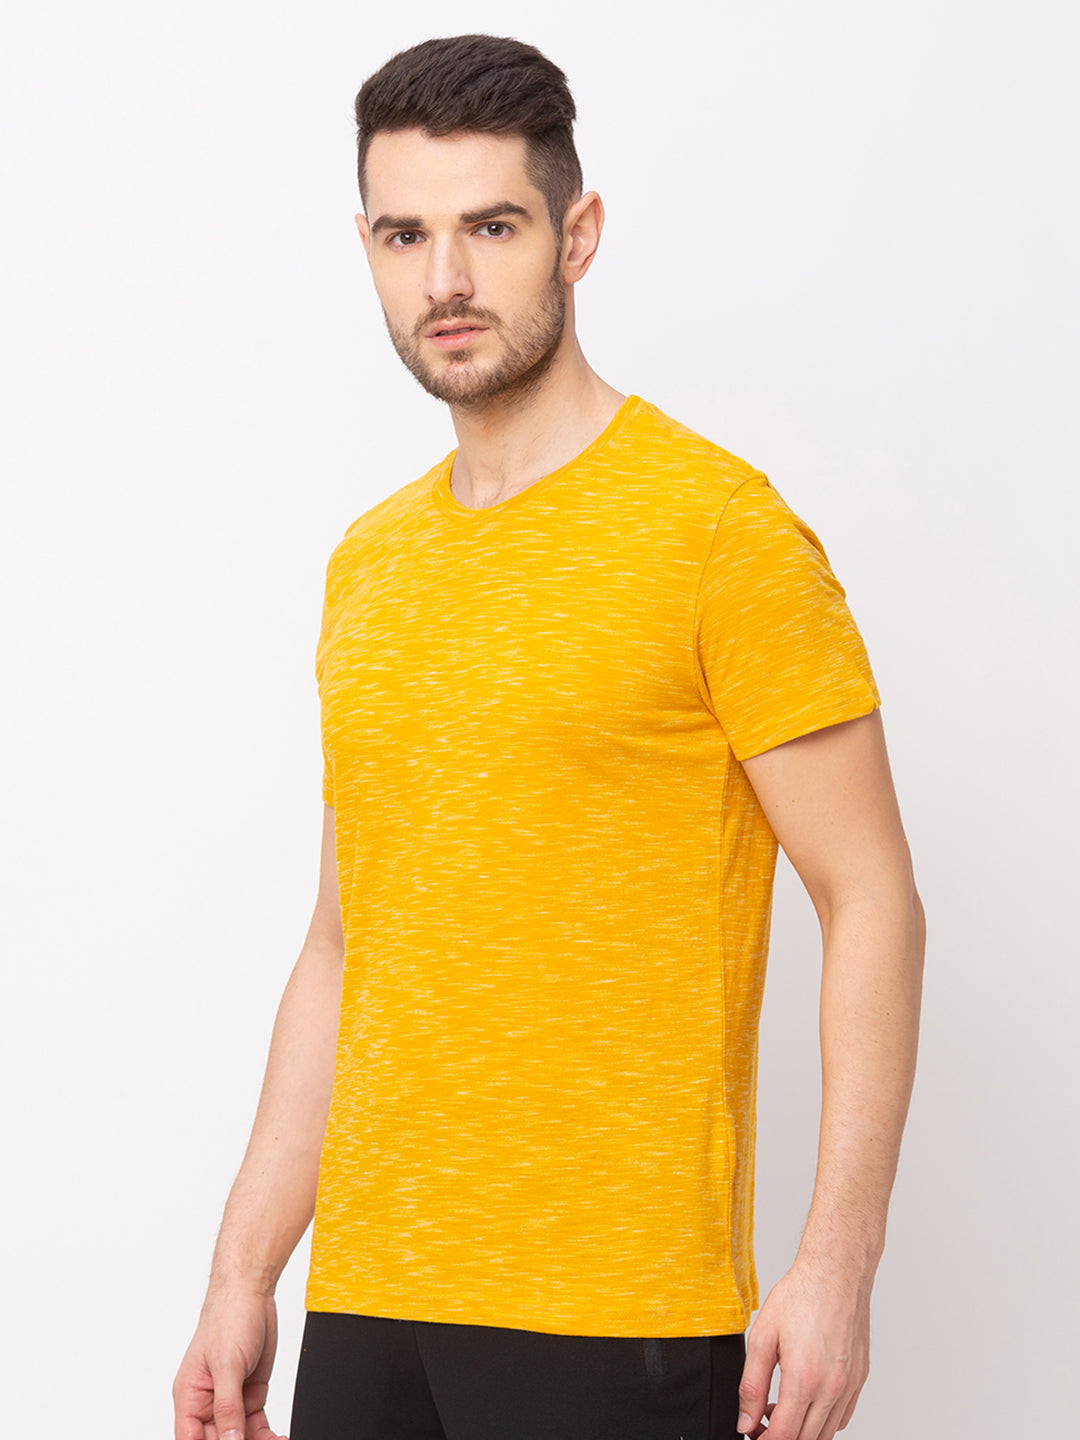 Globus Yellow Solid T-Shirt-2